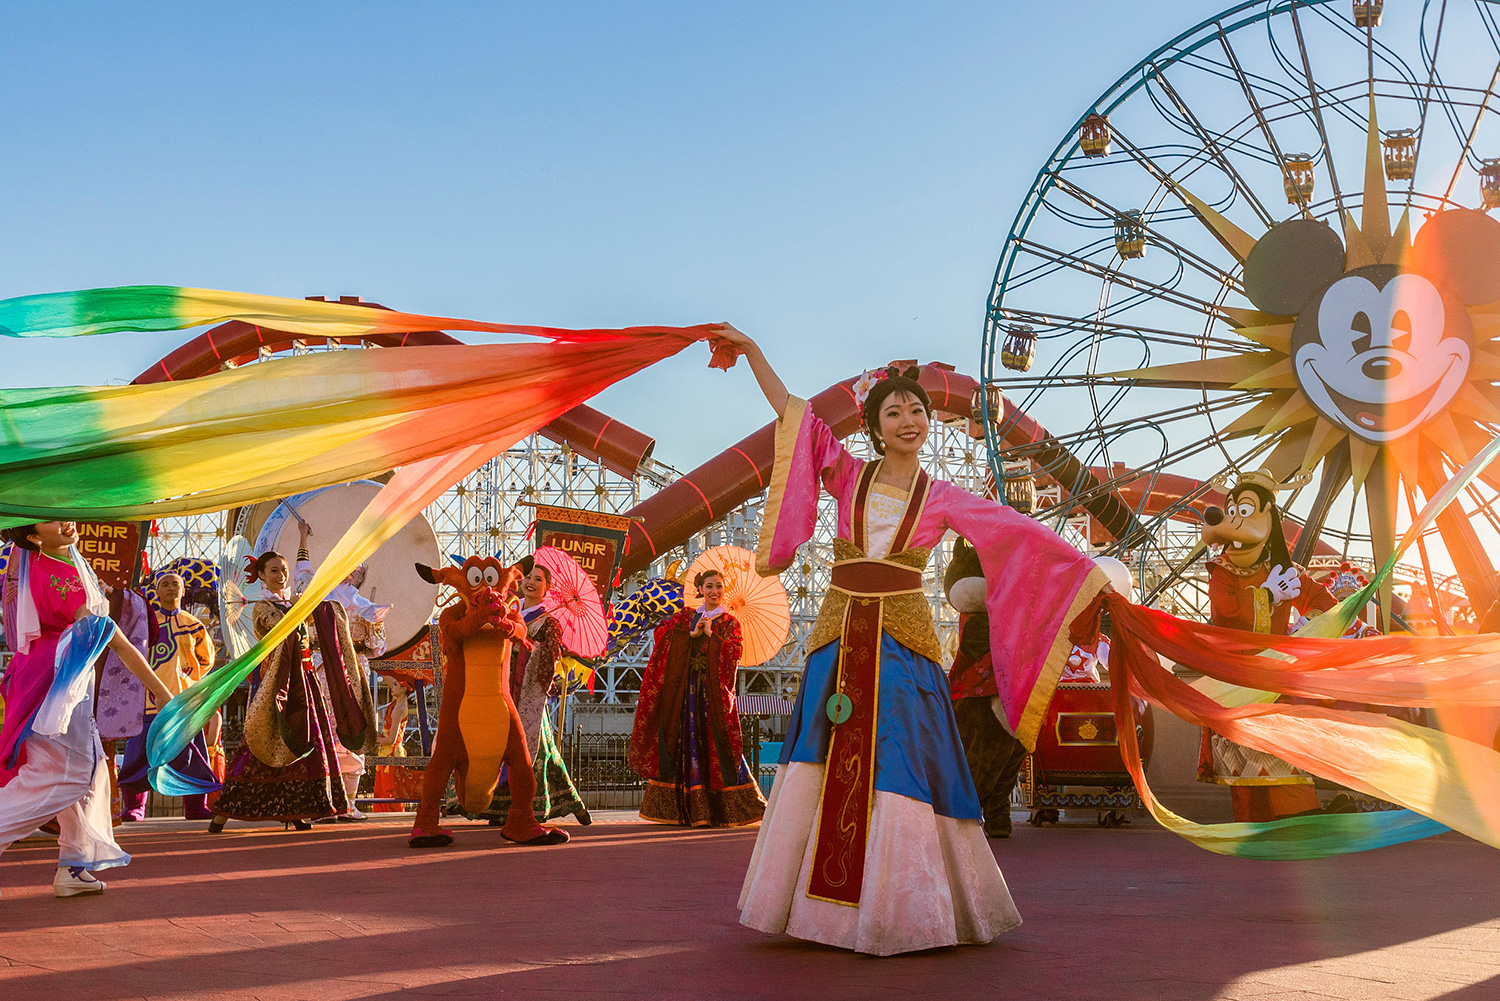 Disneyland Resort in California welcomes a year of good fortune with Lunar New Year celebrations at Disney California Adventure from Jan. 17 – Feb. 9, 2020